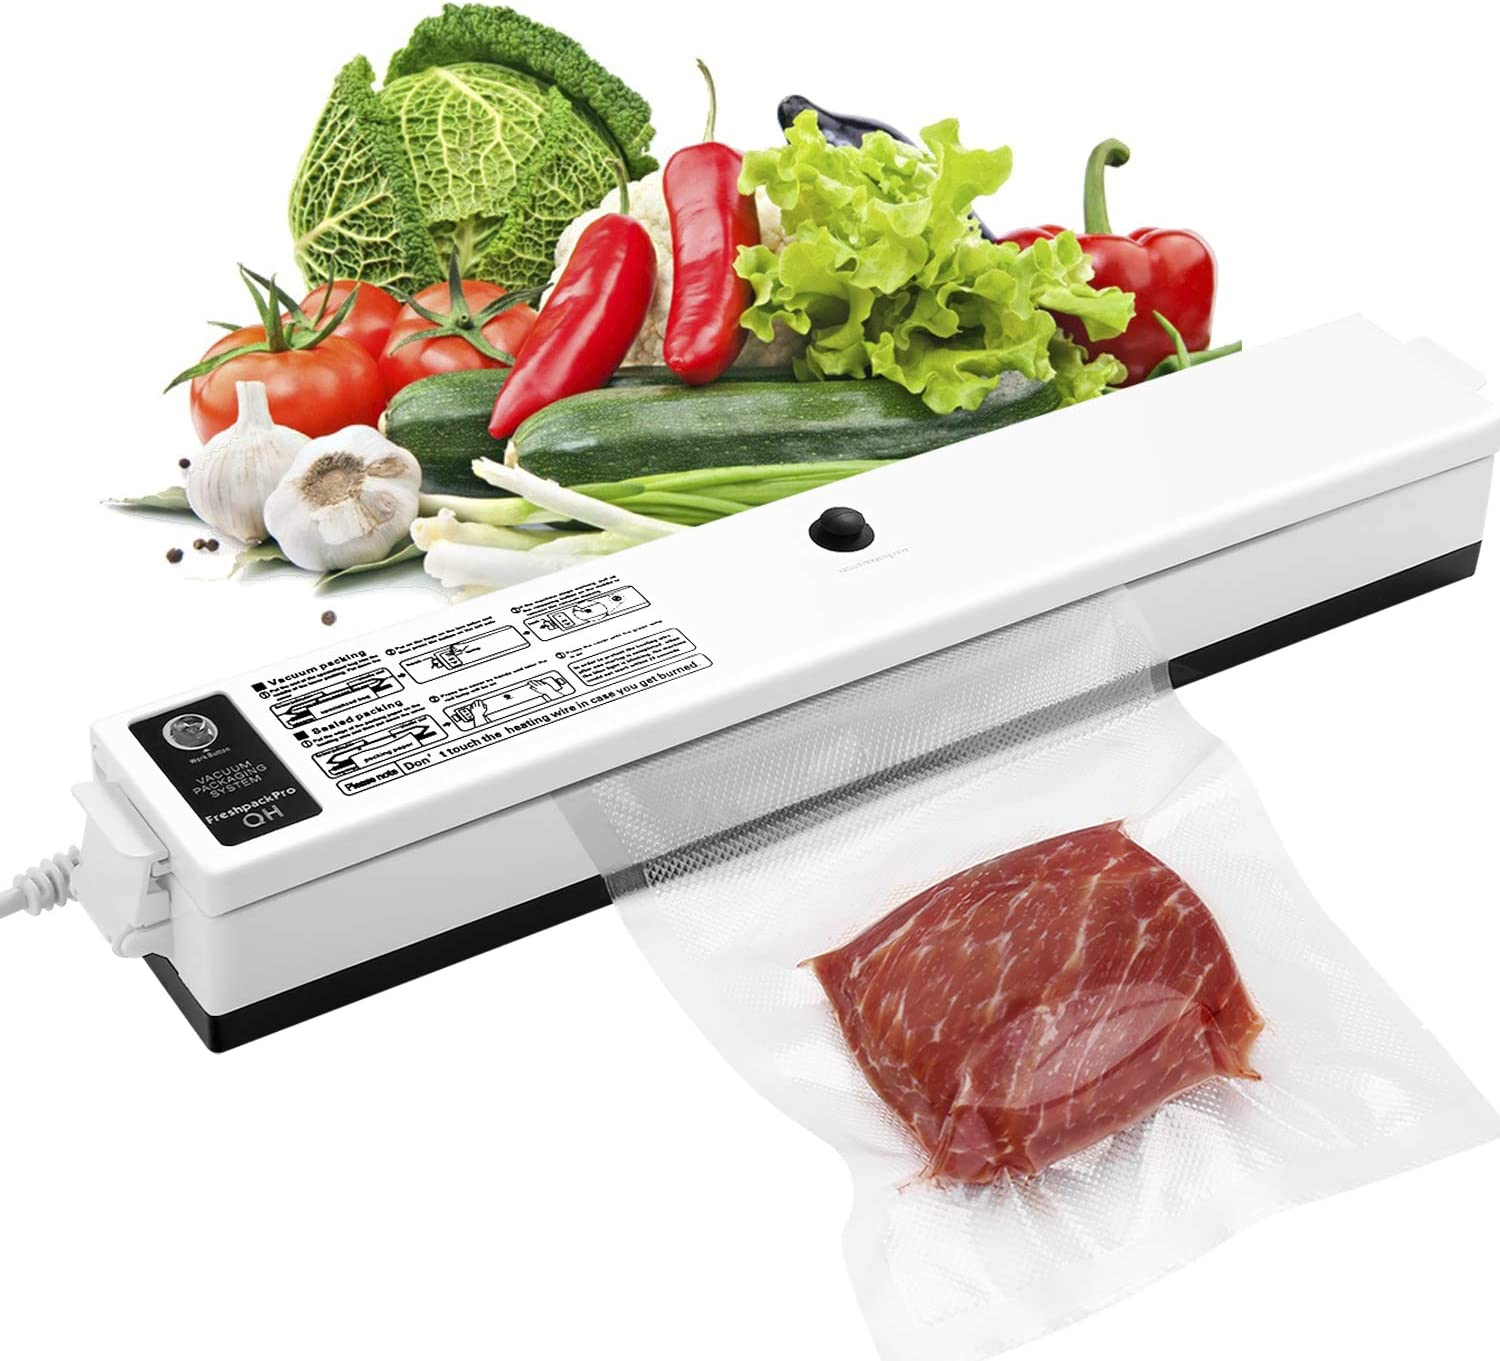 GOSCIEN Vacuum Sealer Machine, Food Sealer Machines Vacuum Food One-button Vacuum Sealing System for Household Commercial Use of Food Preservation with 15 Pcs Vacuum Bags